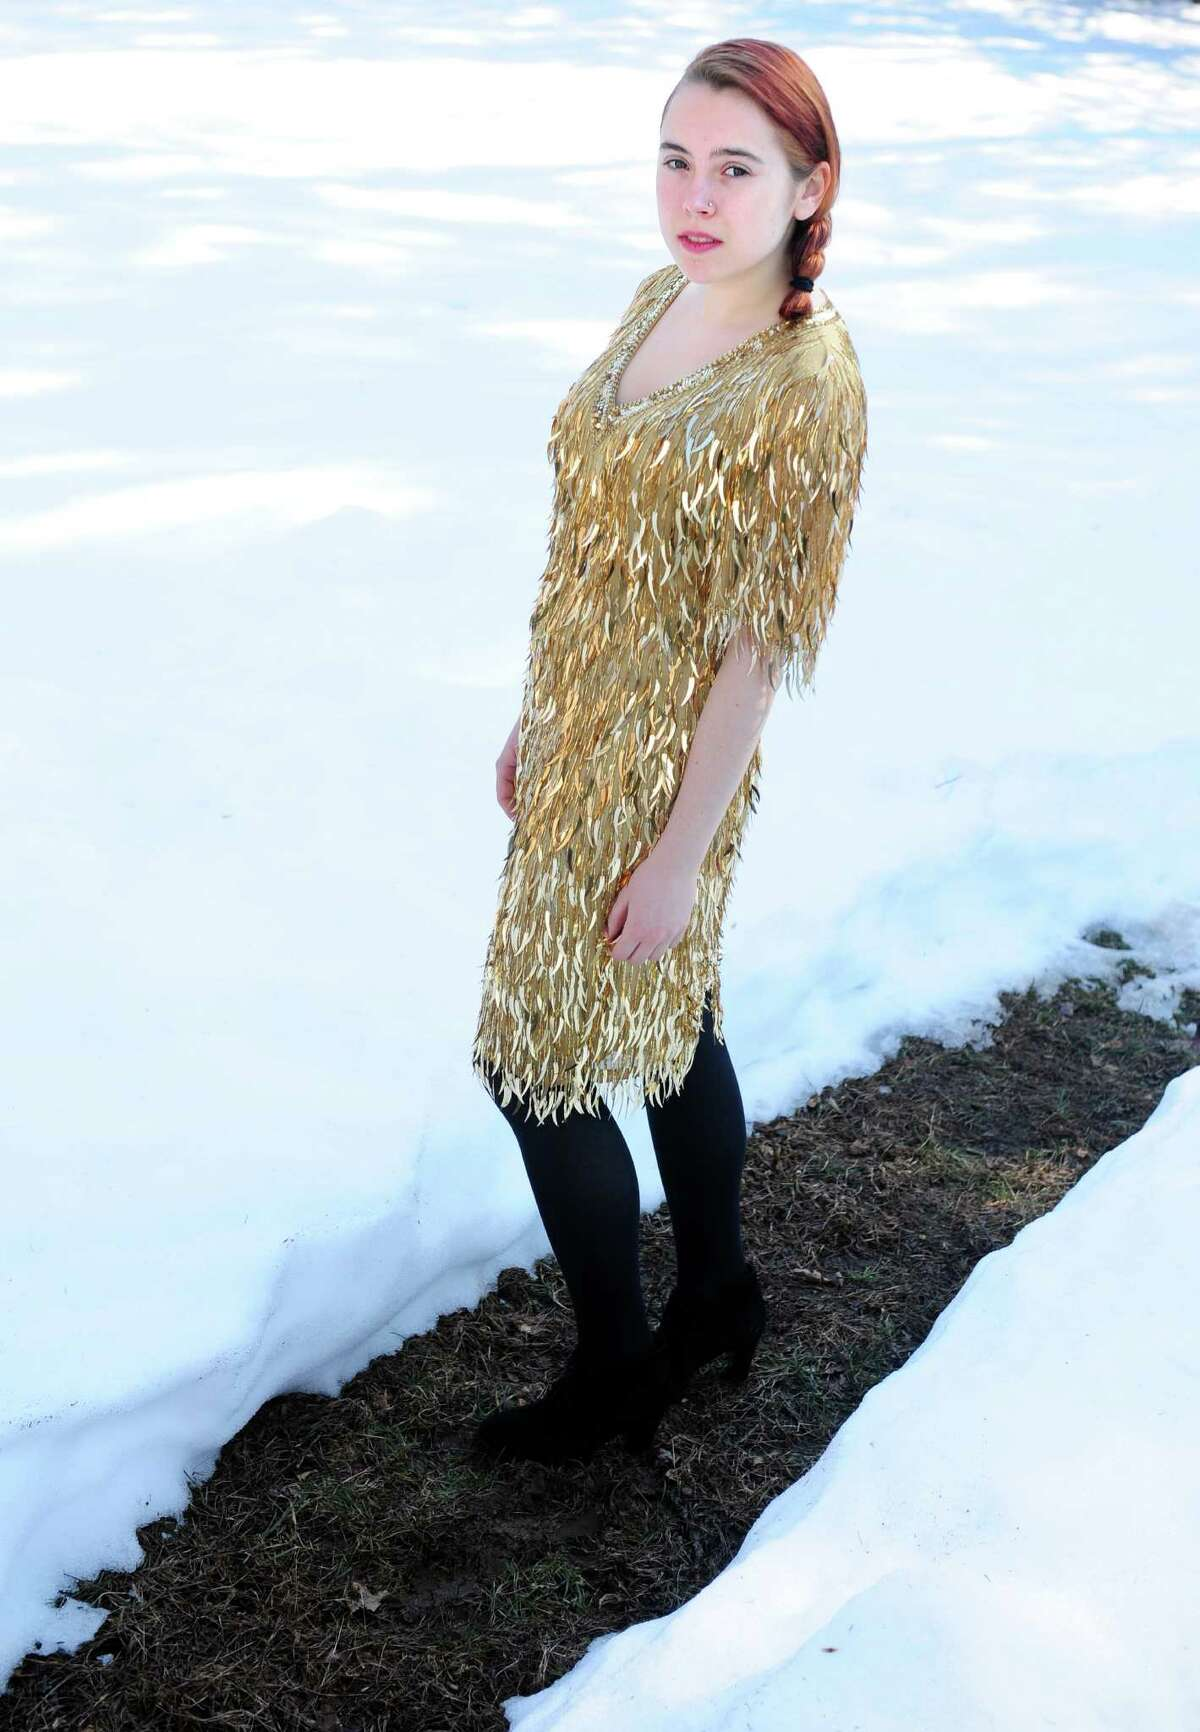 Juliana Gagne, 18, of Fairfield, at home in some of her favorite vintage finds. This fluttery gold, vintage dress she bought for $98 at The Label Exchange in Fairfield.